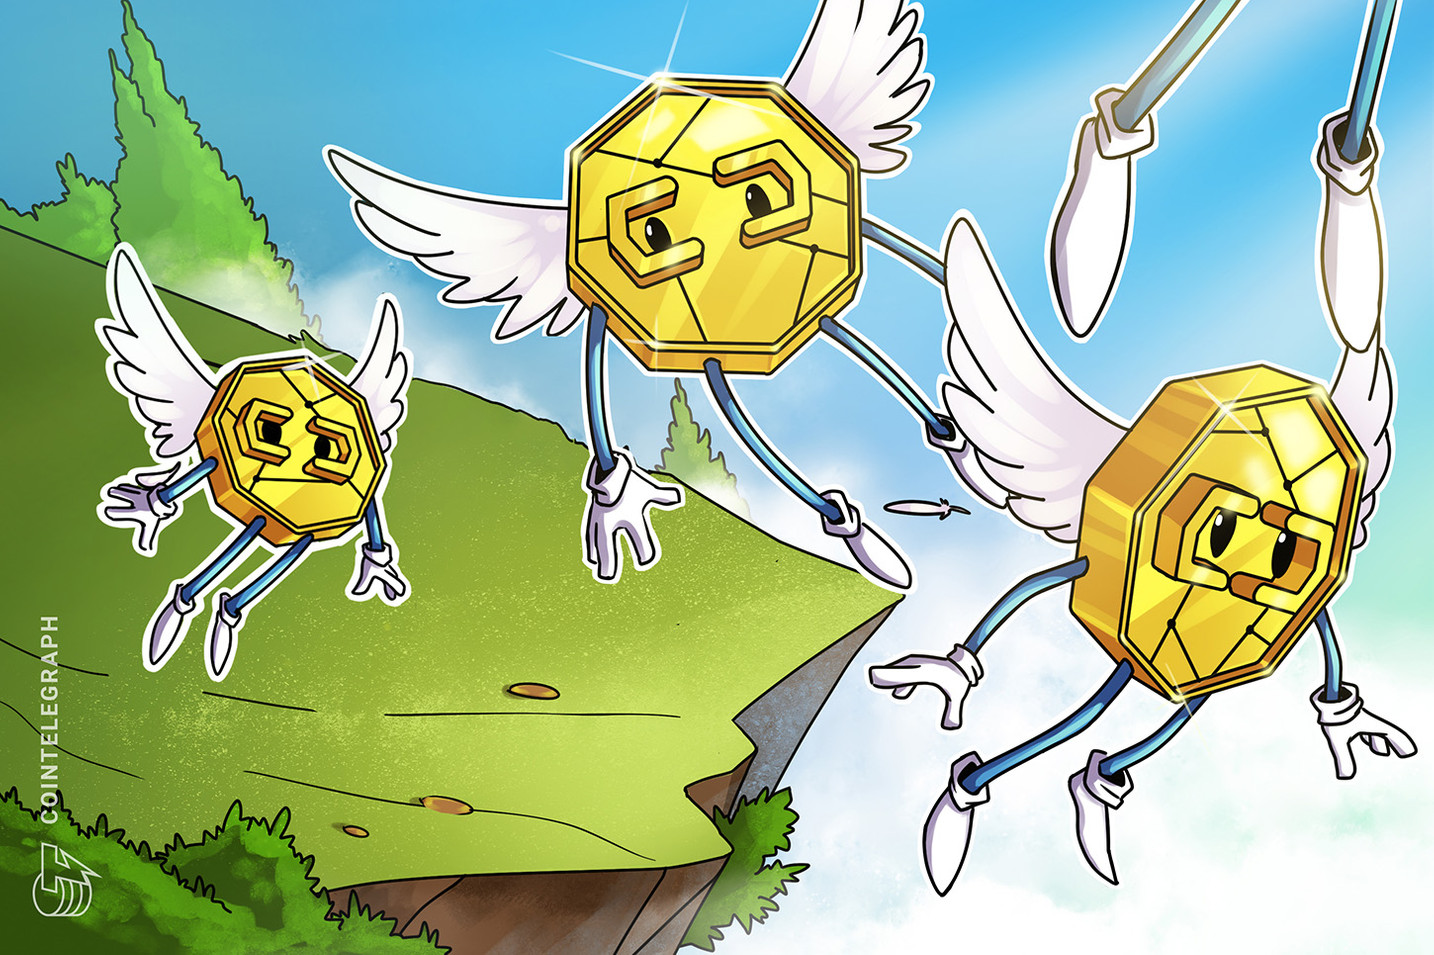 Governance proposals and layer-two launches provide a boost to altcoins